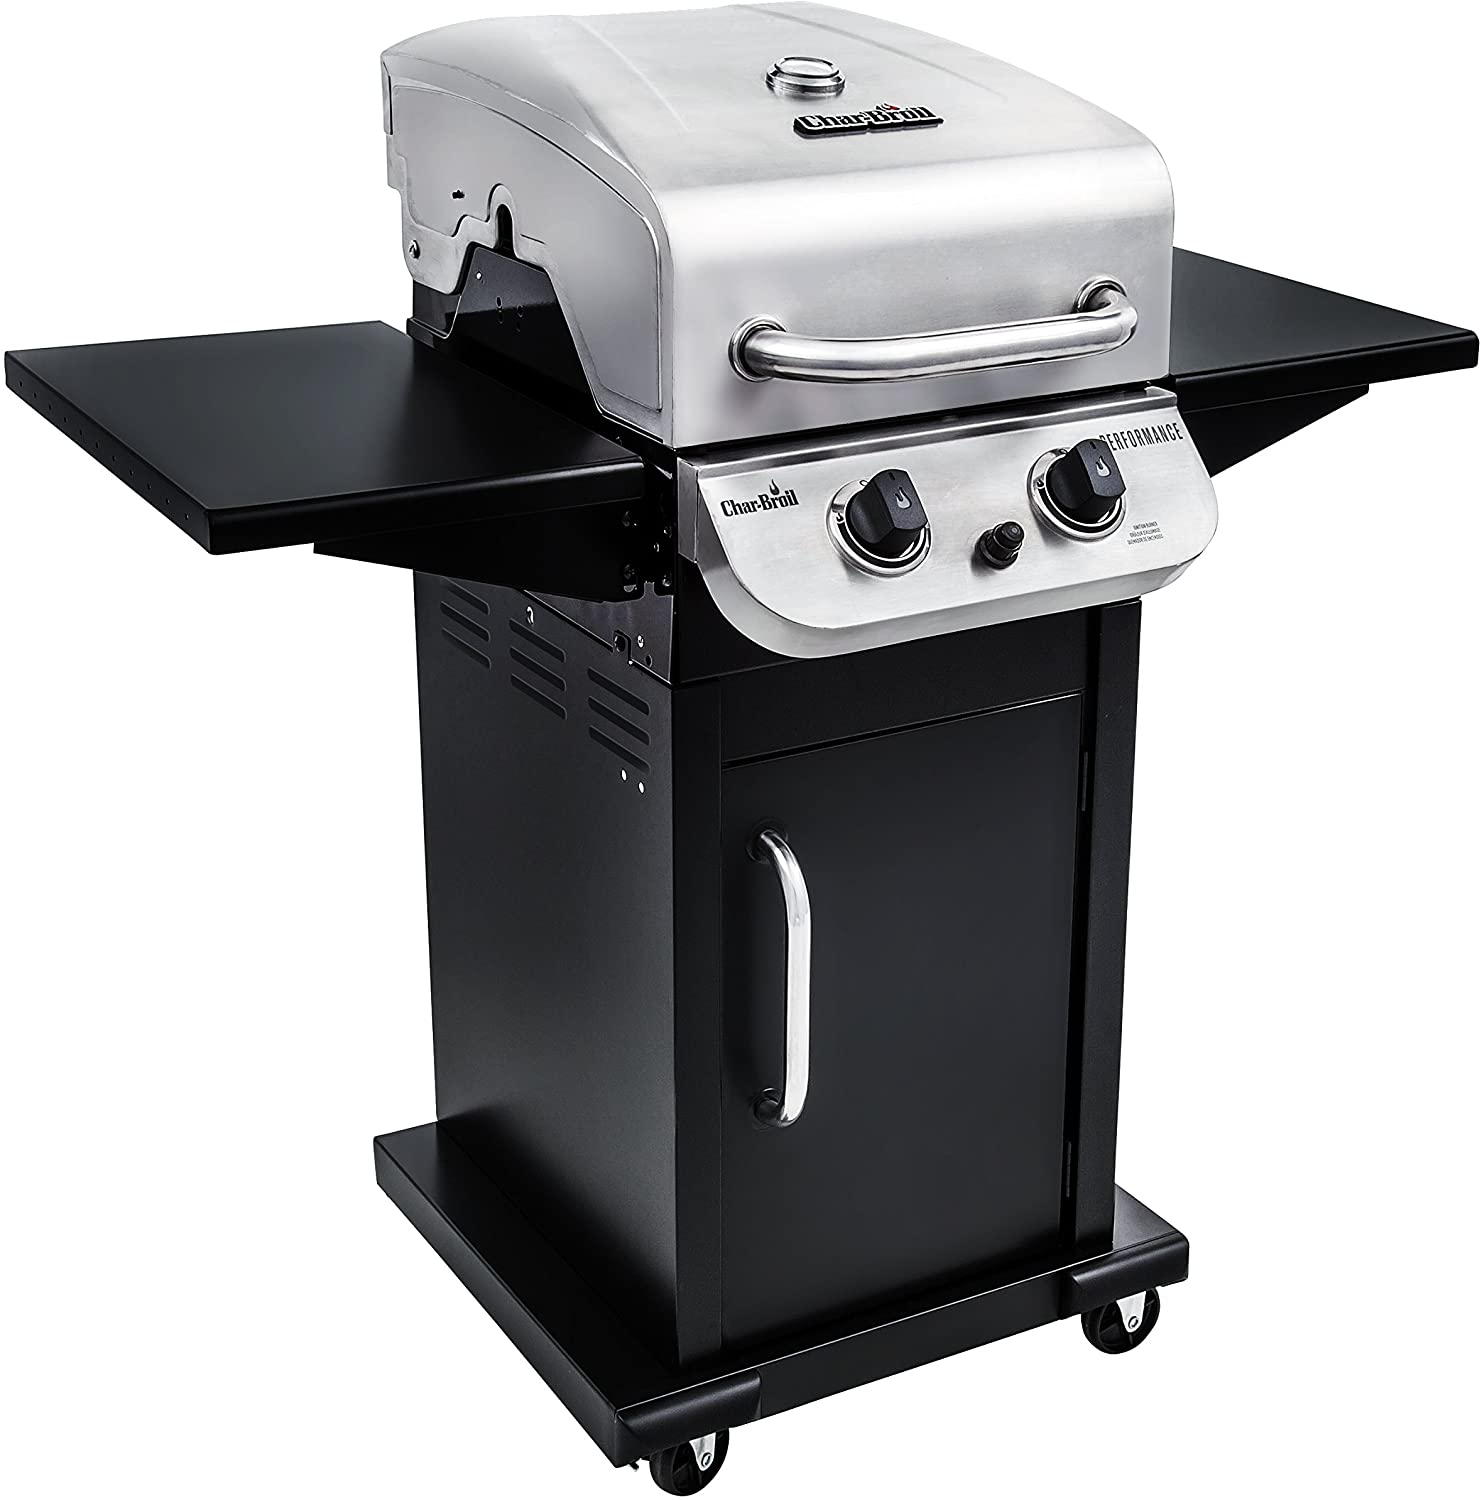 Cook Your Way Through with the 10 Best 2 Burner Gas Grill 1